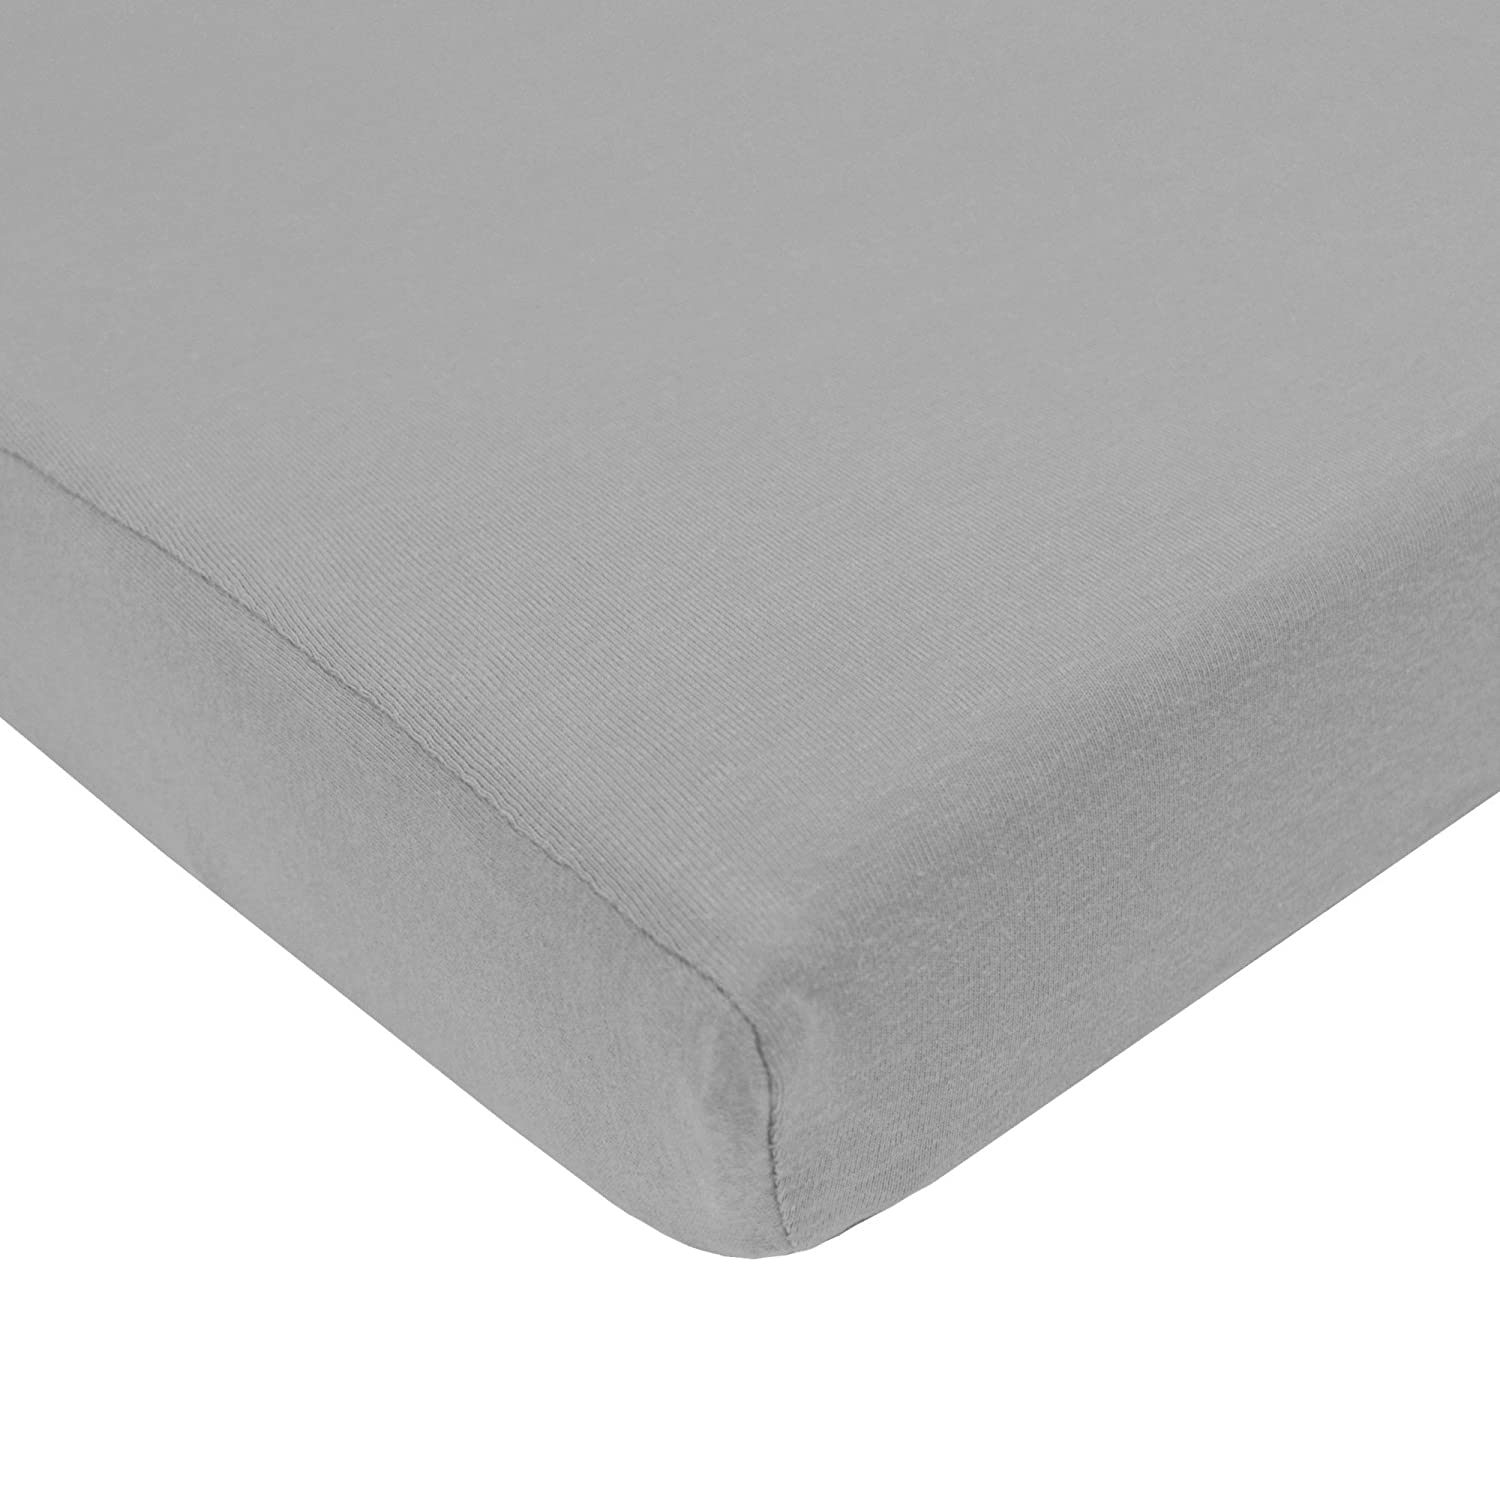 American Baby Company 100% Natural Cotton Value Jersey Knit Fitted Pack N Play Playard Sheet, Gray, Soft Breathable, for Boys and Girls